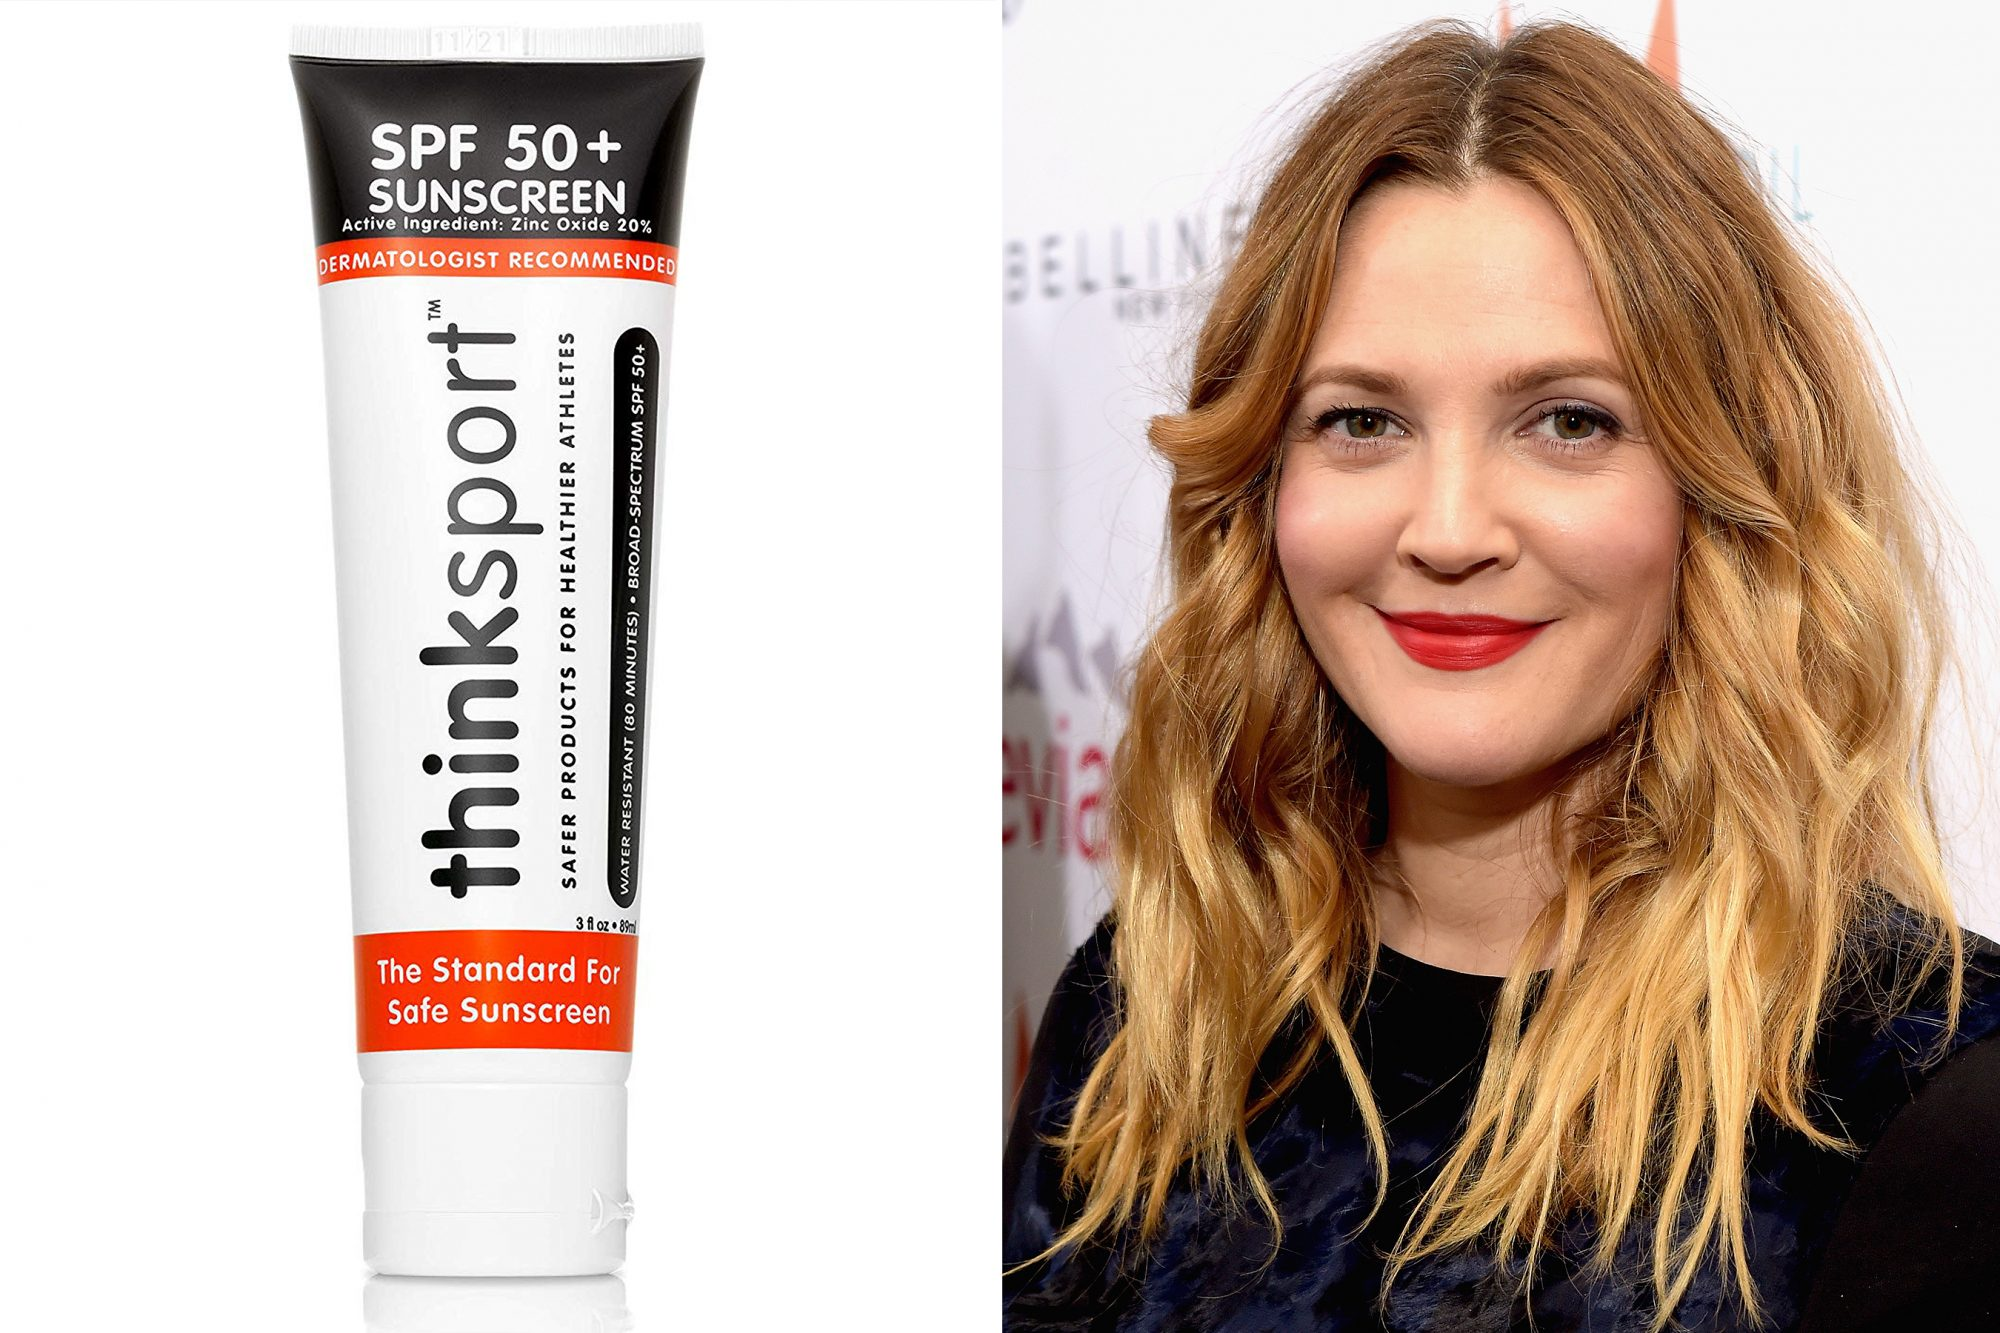 amazon beauty products, Drew Barrymore